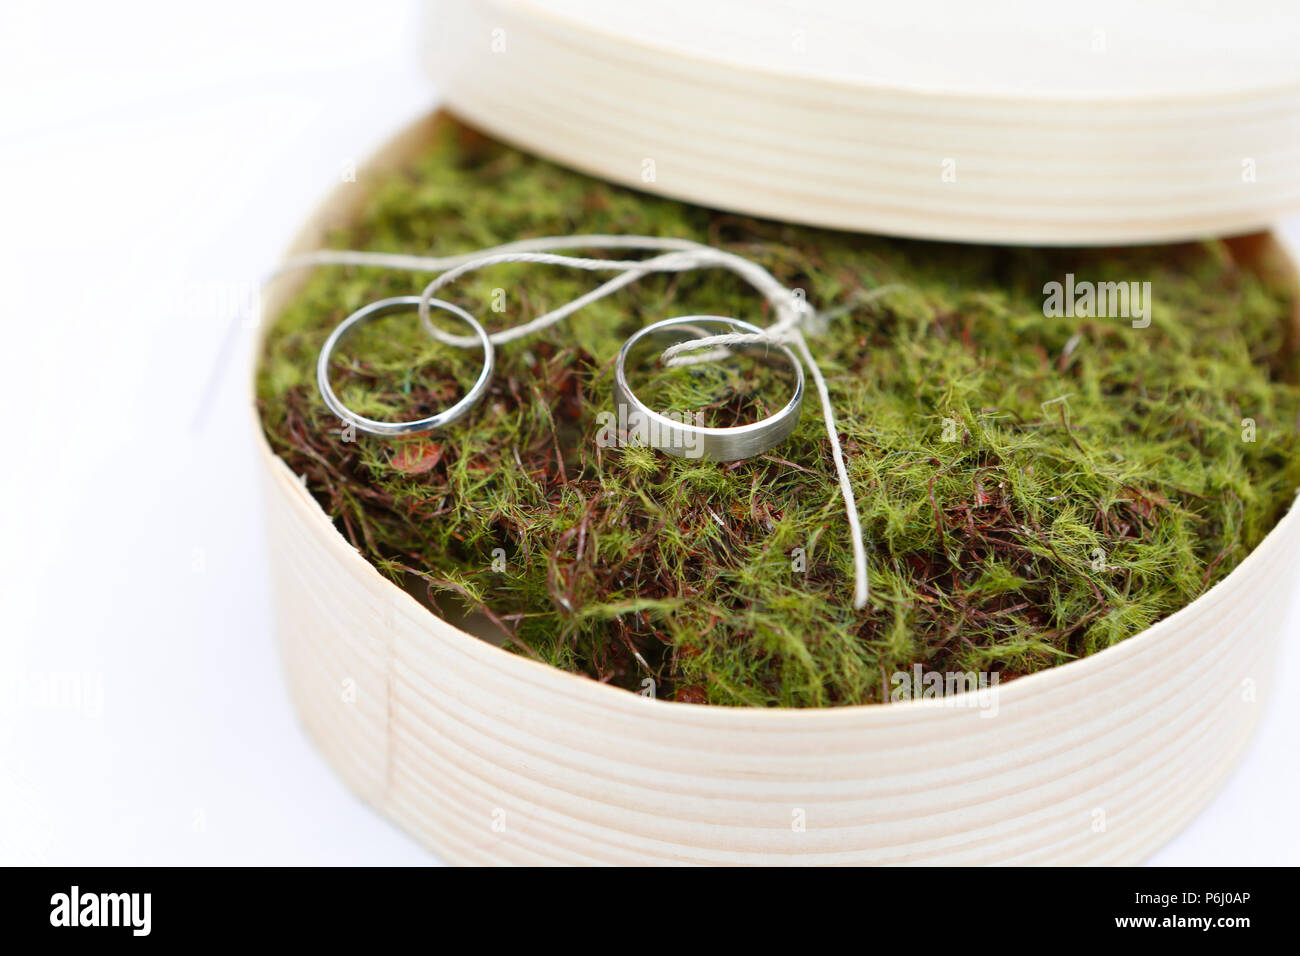 Wedding rings made of surgical steel, marriage - Stock Image